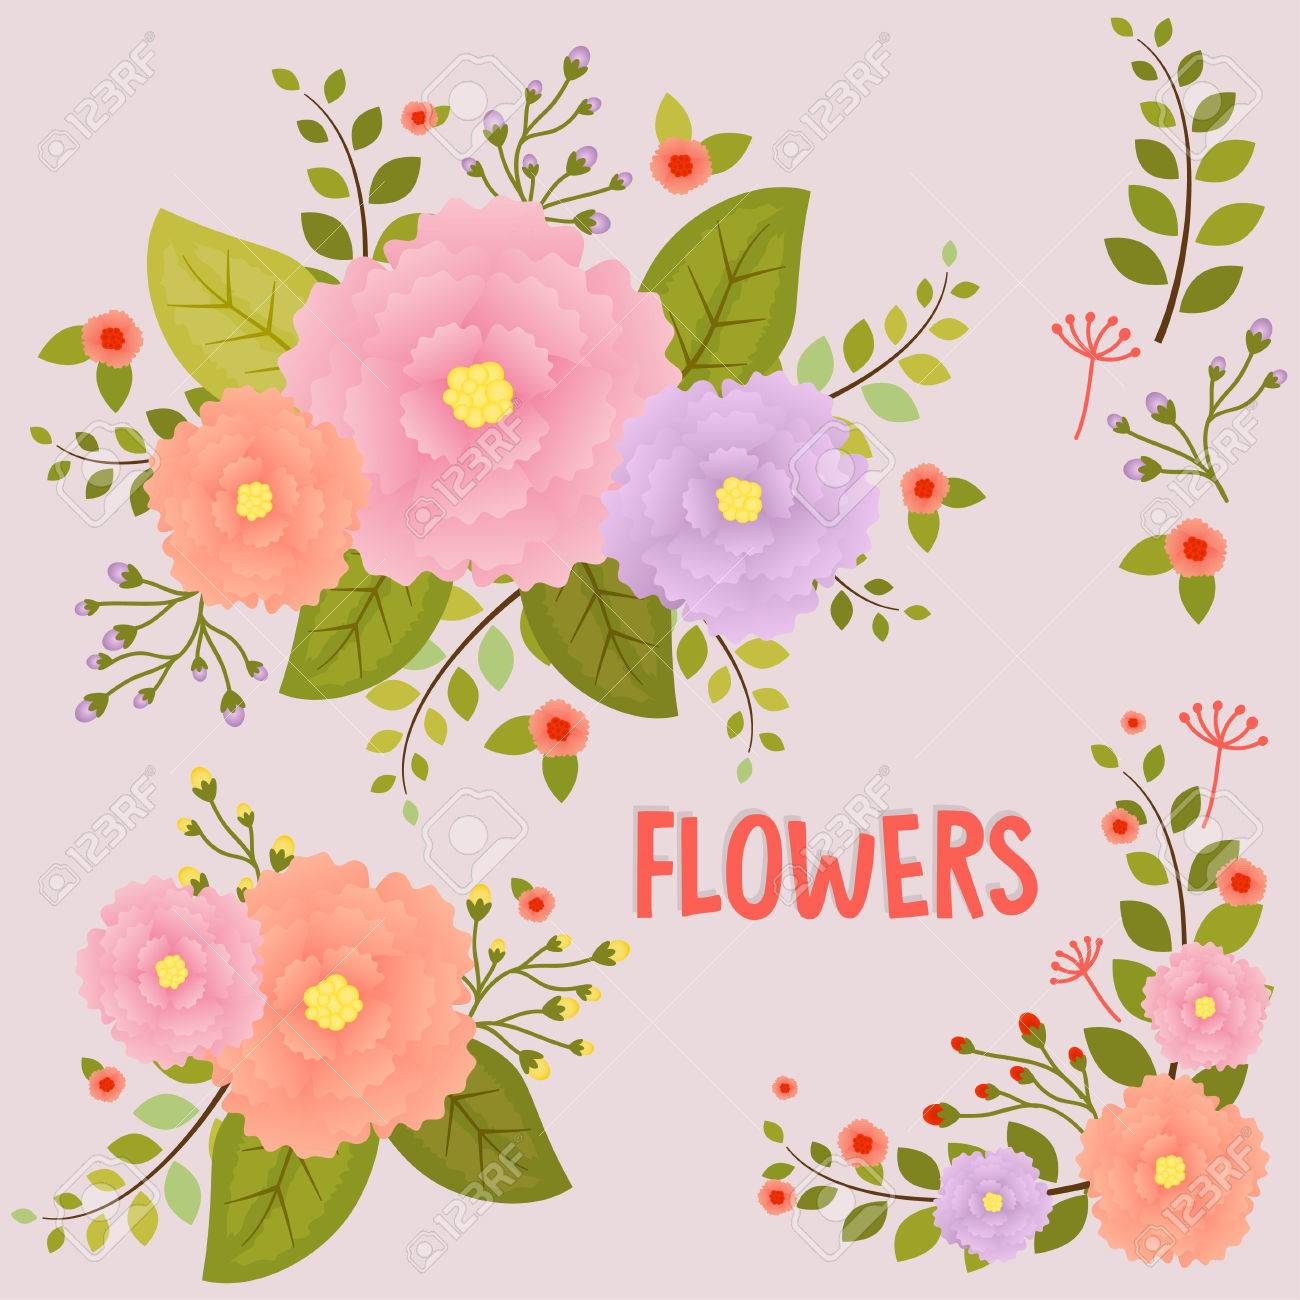 Cute Floral Bouquets, Vintage Flowers Royalty Free Cliparts, Vectors ...